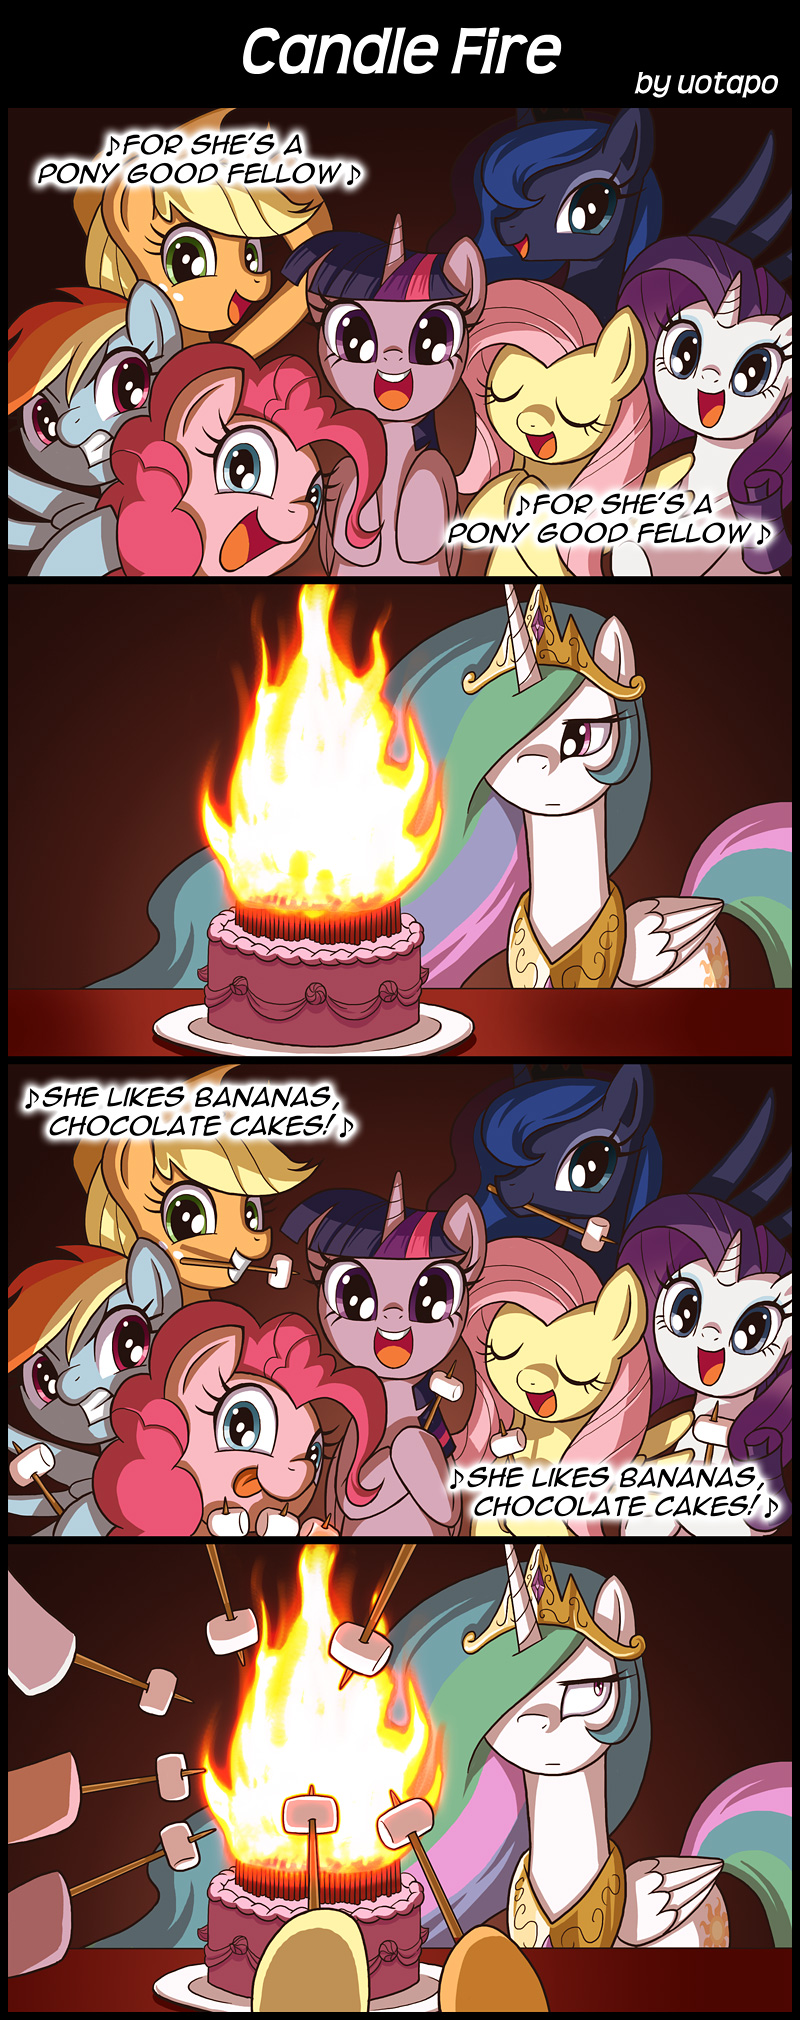 candle_fire_by_uotapo-d7wgf6v.jpg